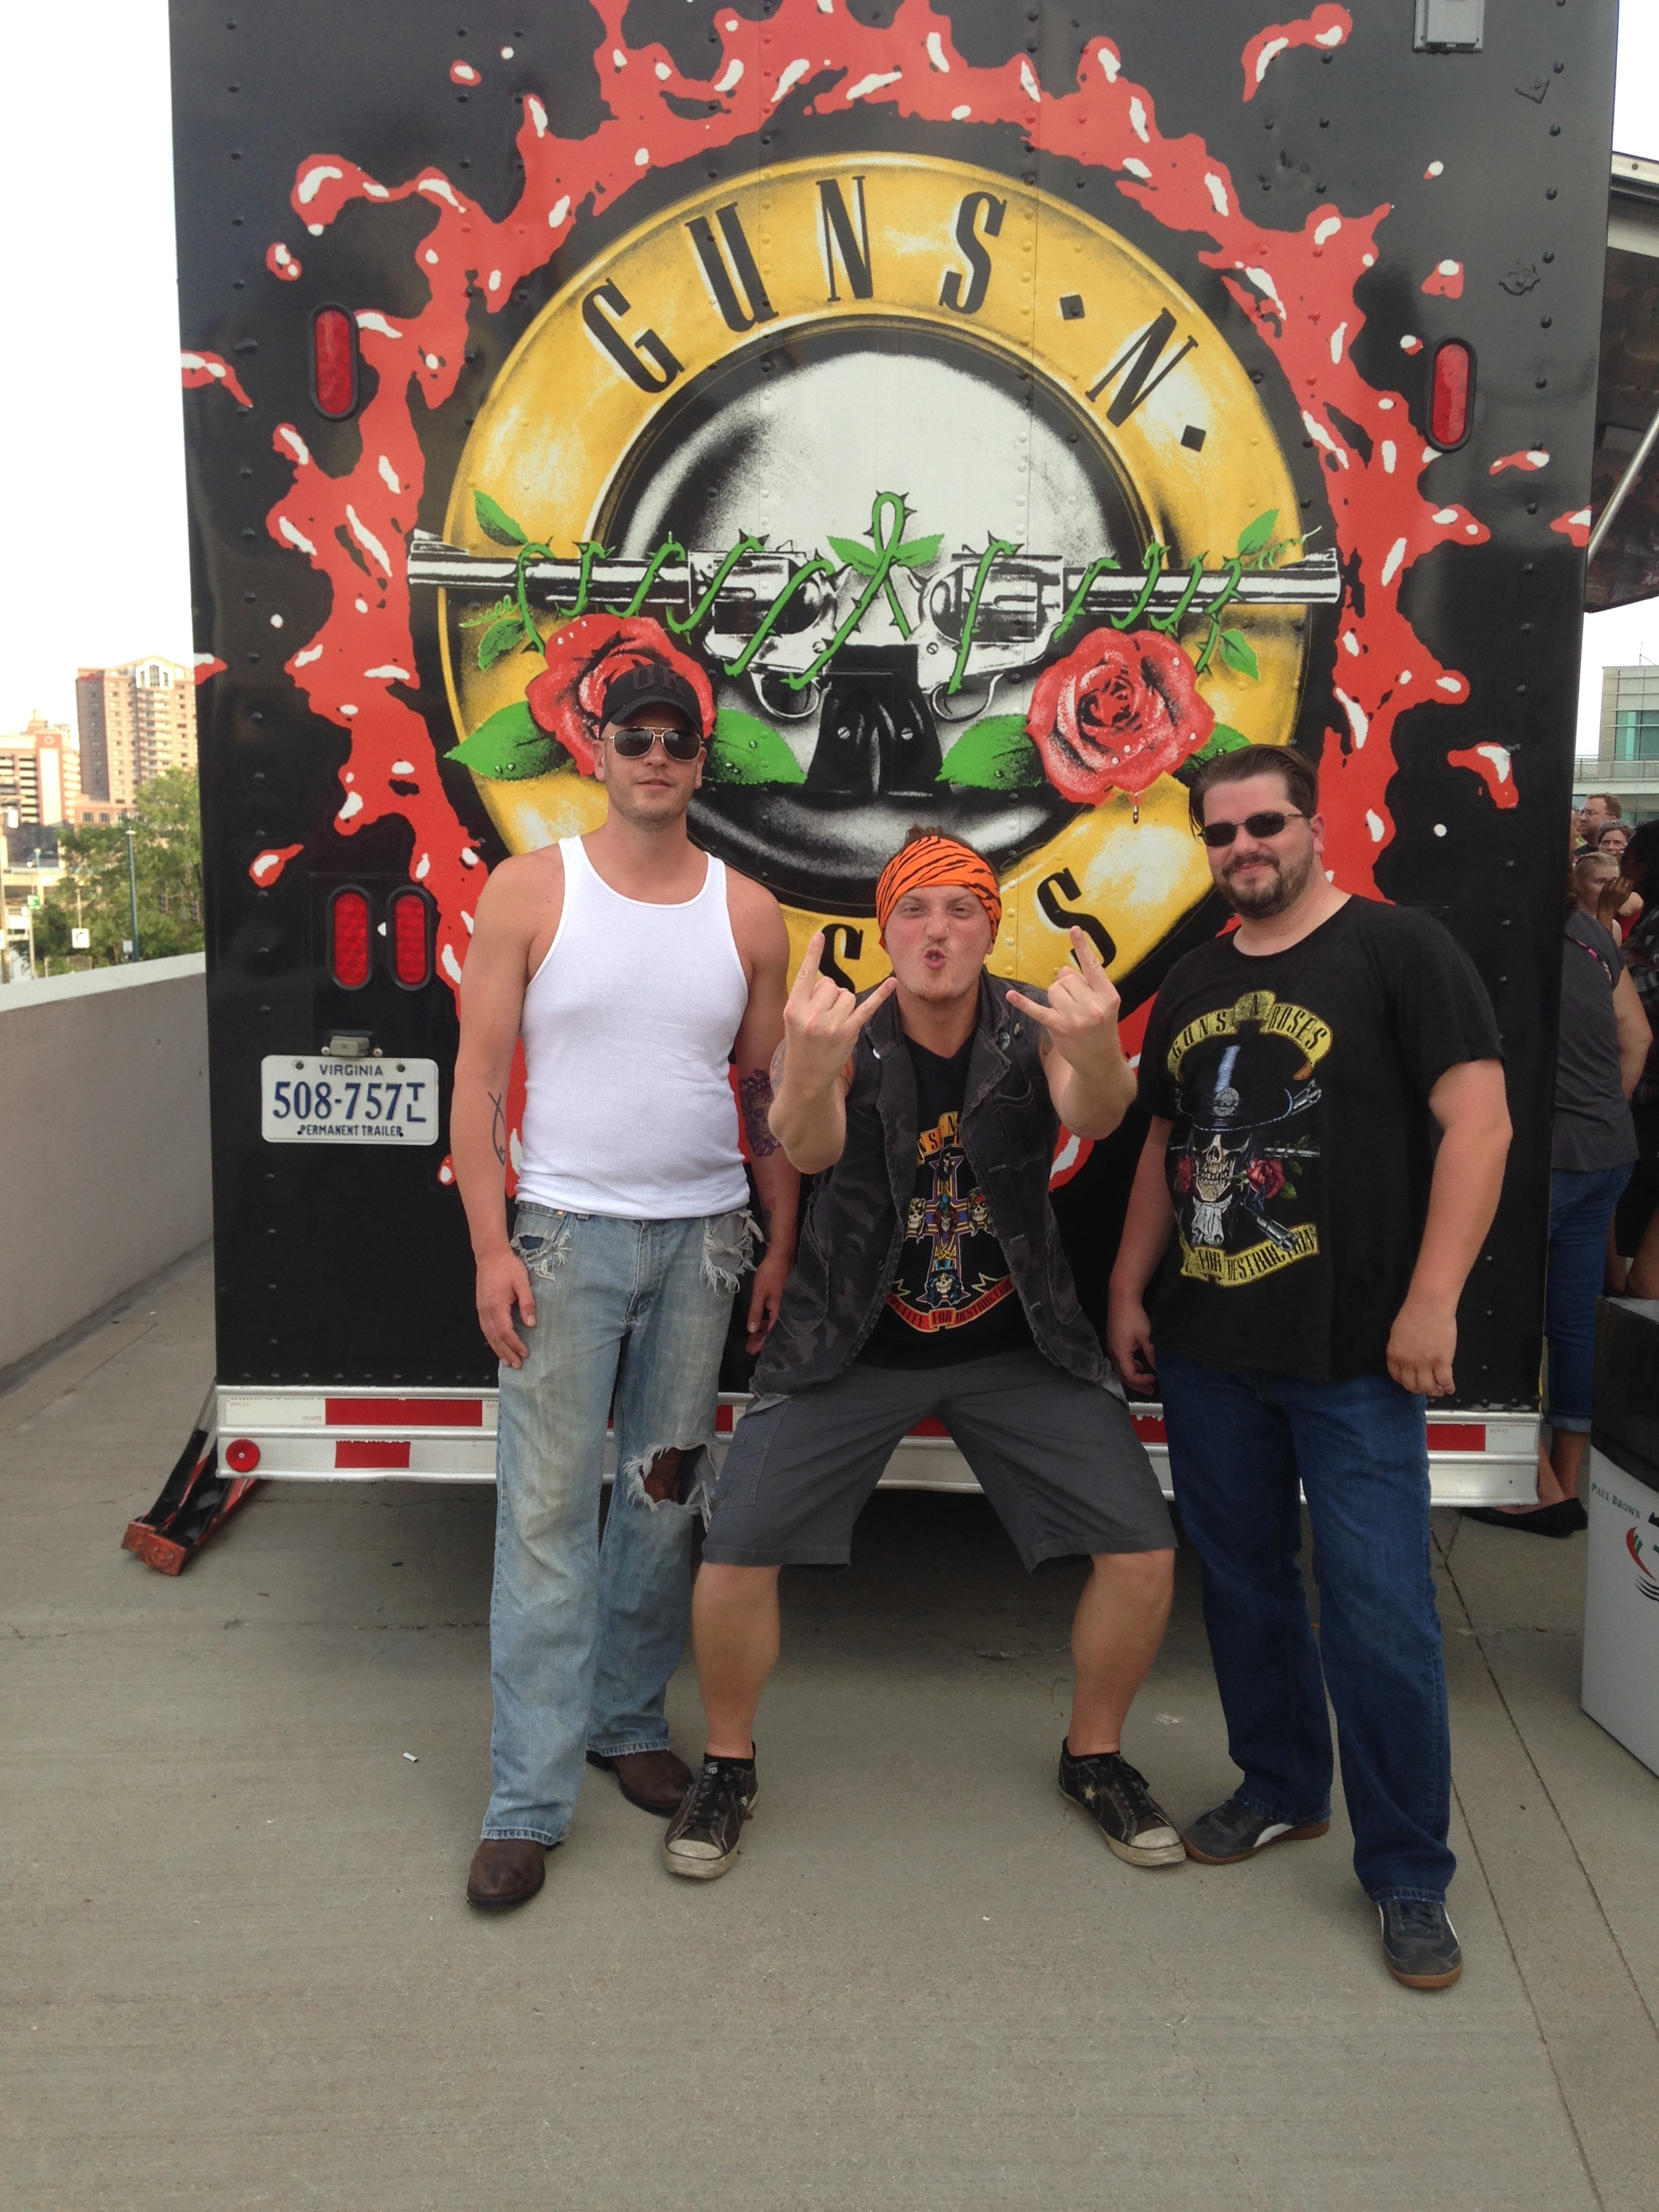 Myself (middle), with two of my best friends.  All diehard GNR fans, who had waited our whole lives for this night!